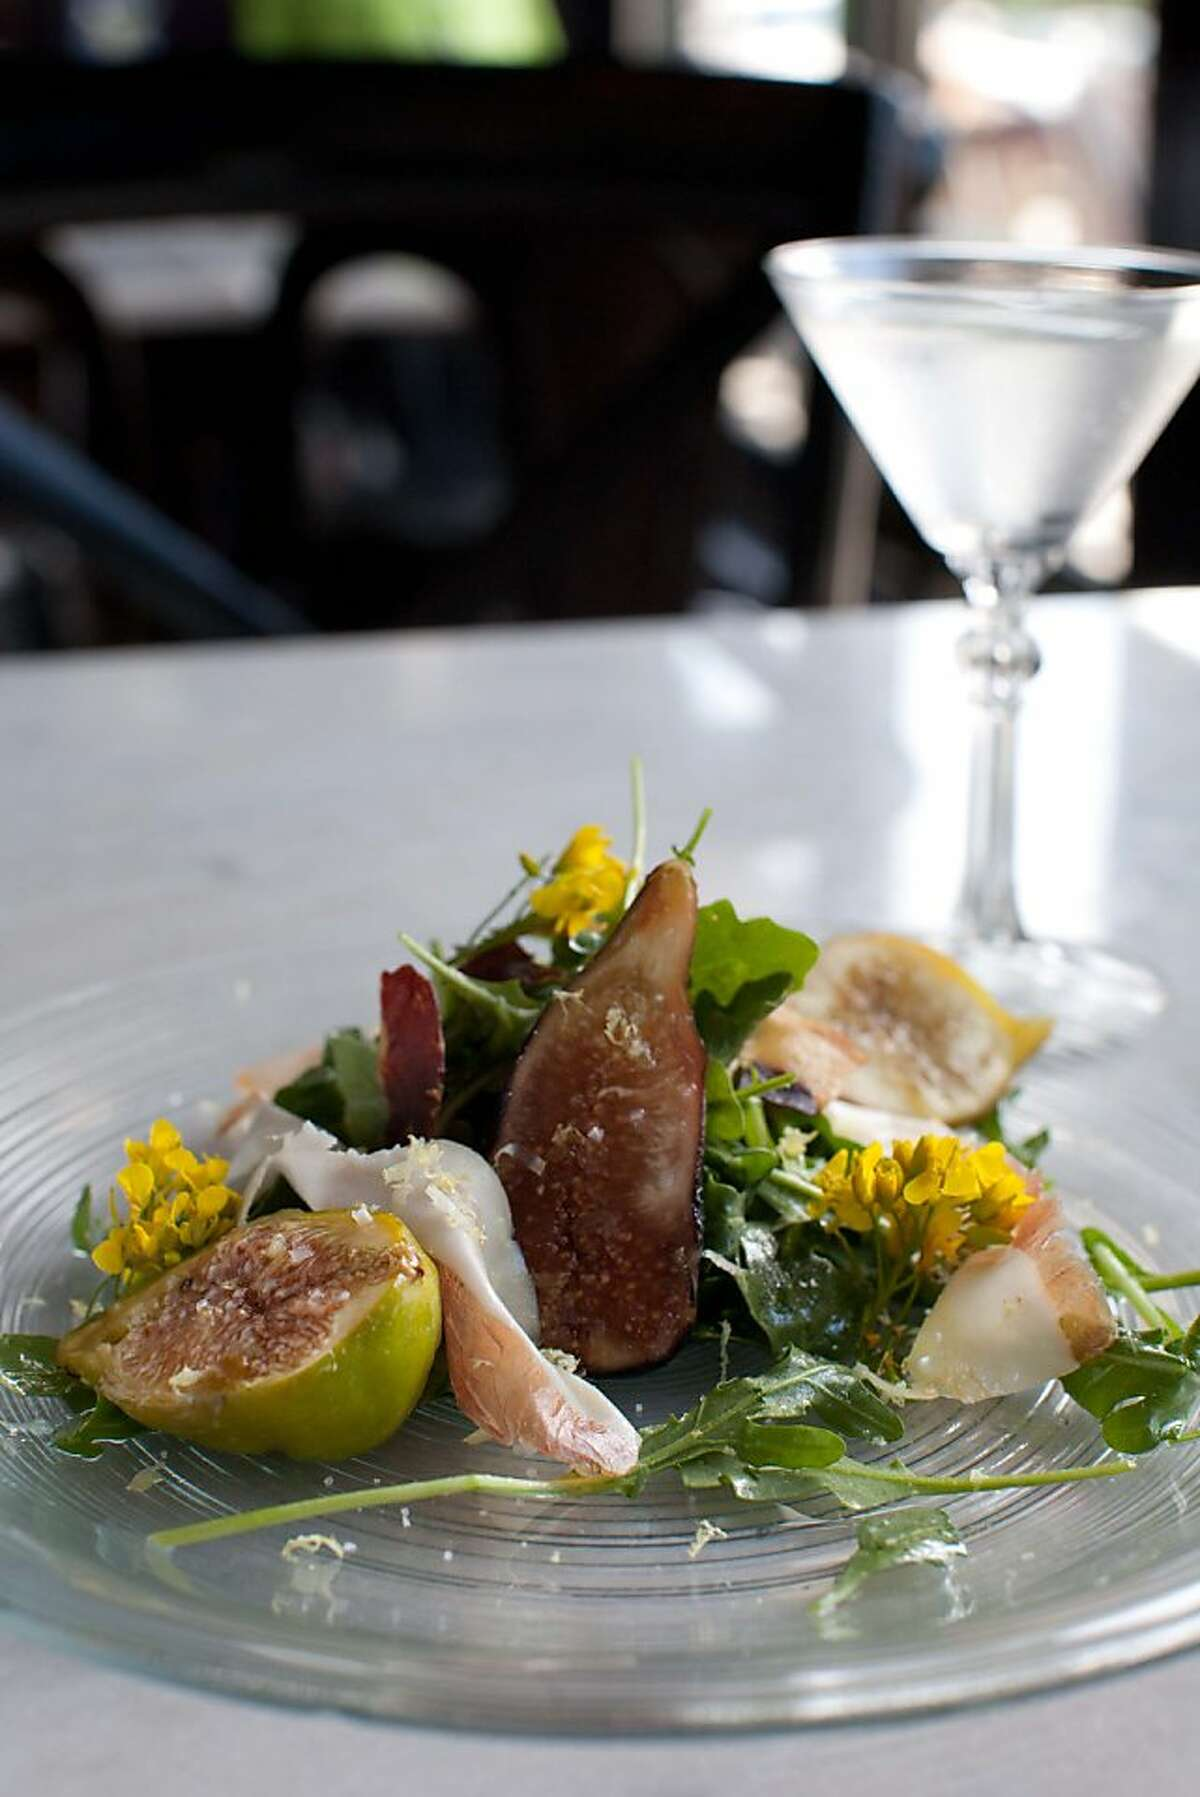 """Park Tavern's new """"Three Martini Lunch and Summer Fridays"""" features three courses, each paired with a martini-like drink. A starter salad of smoked figs, prosciutto, arugula and flowers is paired with a vodka martini spiked with black peppercorns for a palate-pleasing kick."""